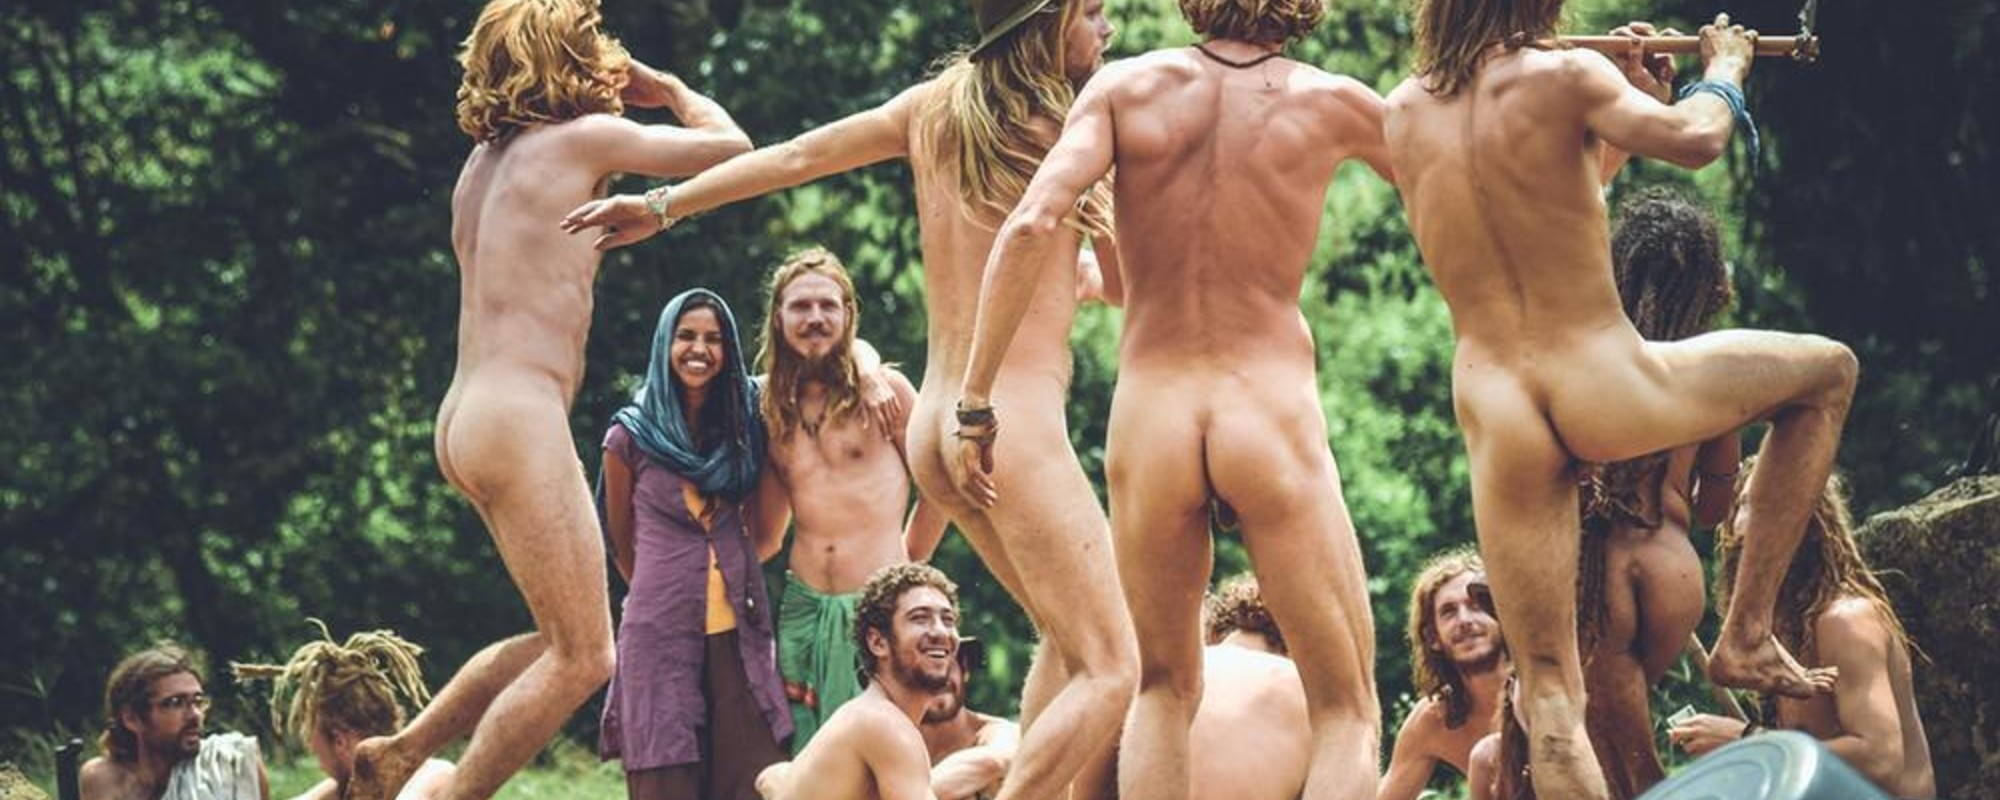 Love, Bums and Drum Circles: Postcards from a Modern-Day Hippie Paradise